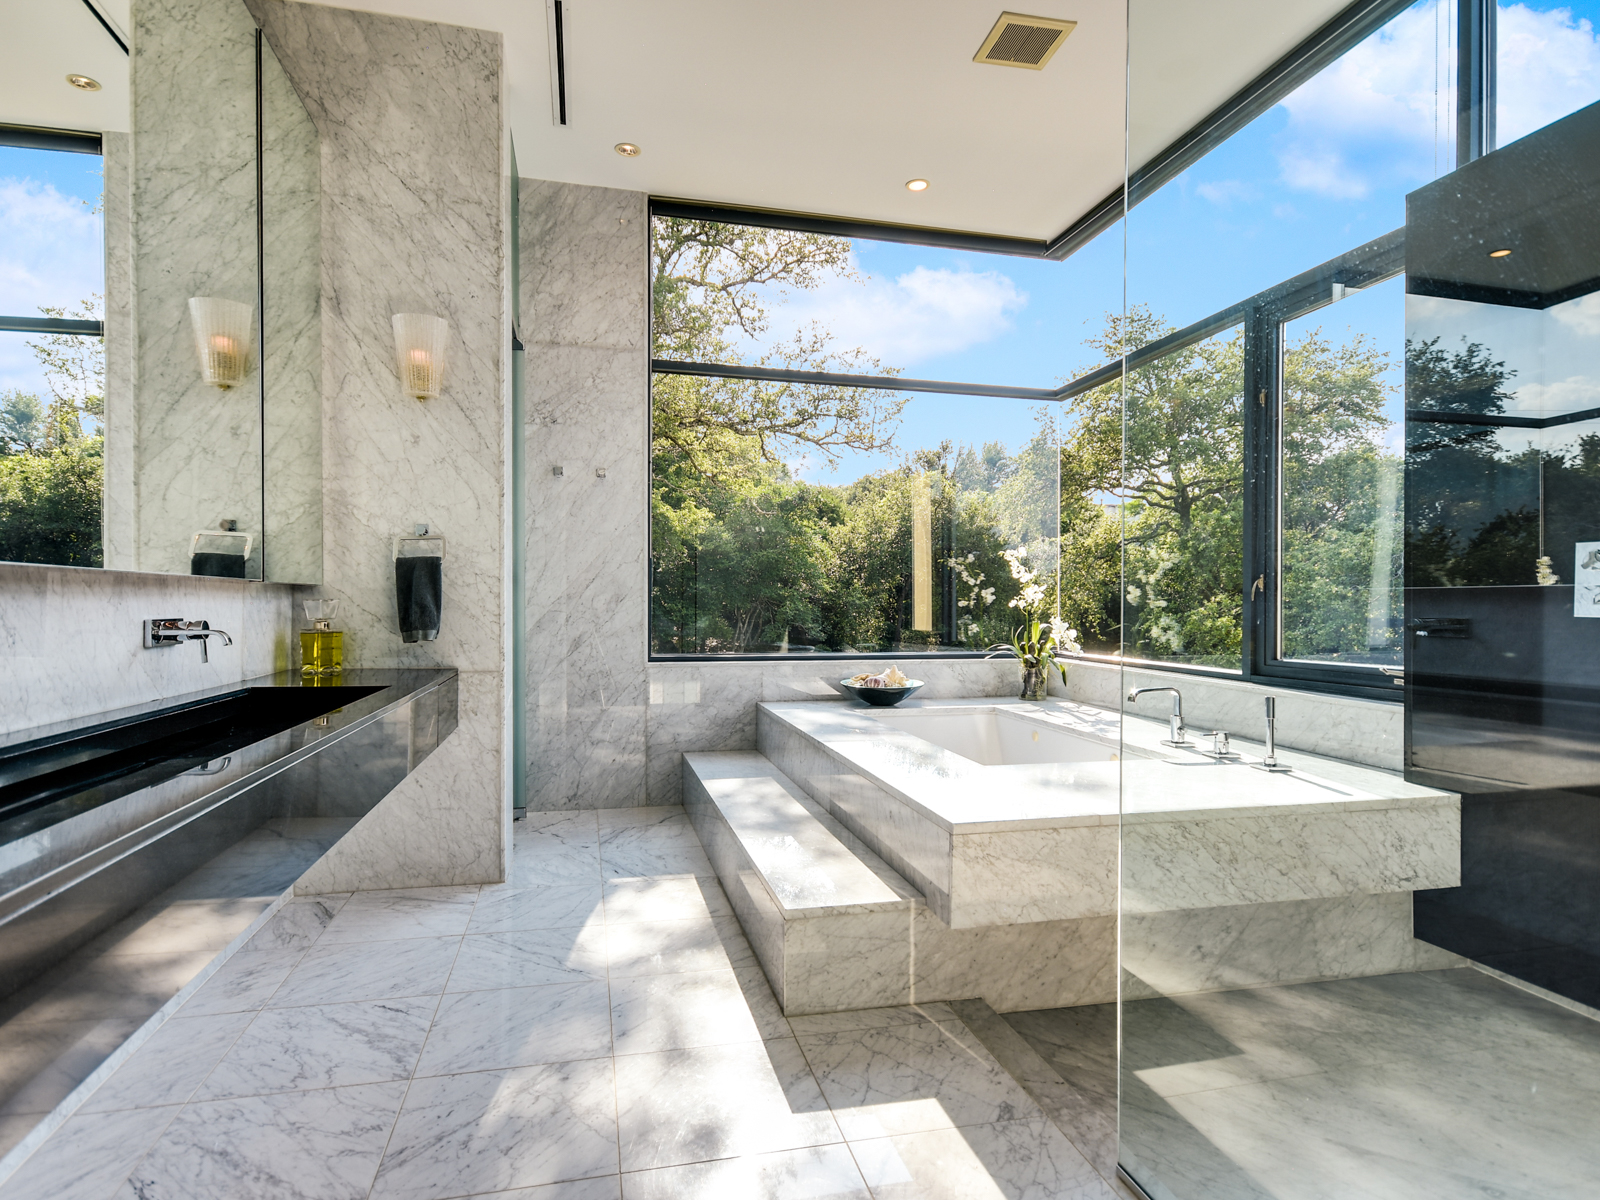 Additional photo for property listing at Westlake Hills Gated European Contemporary 513 Konstanty Cir Austin, Texas 78746 United States